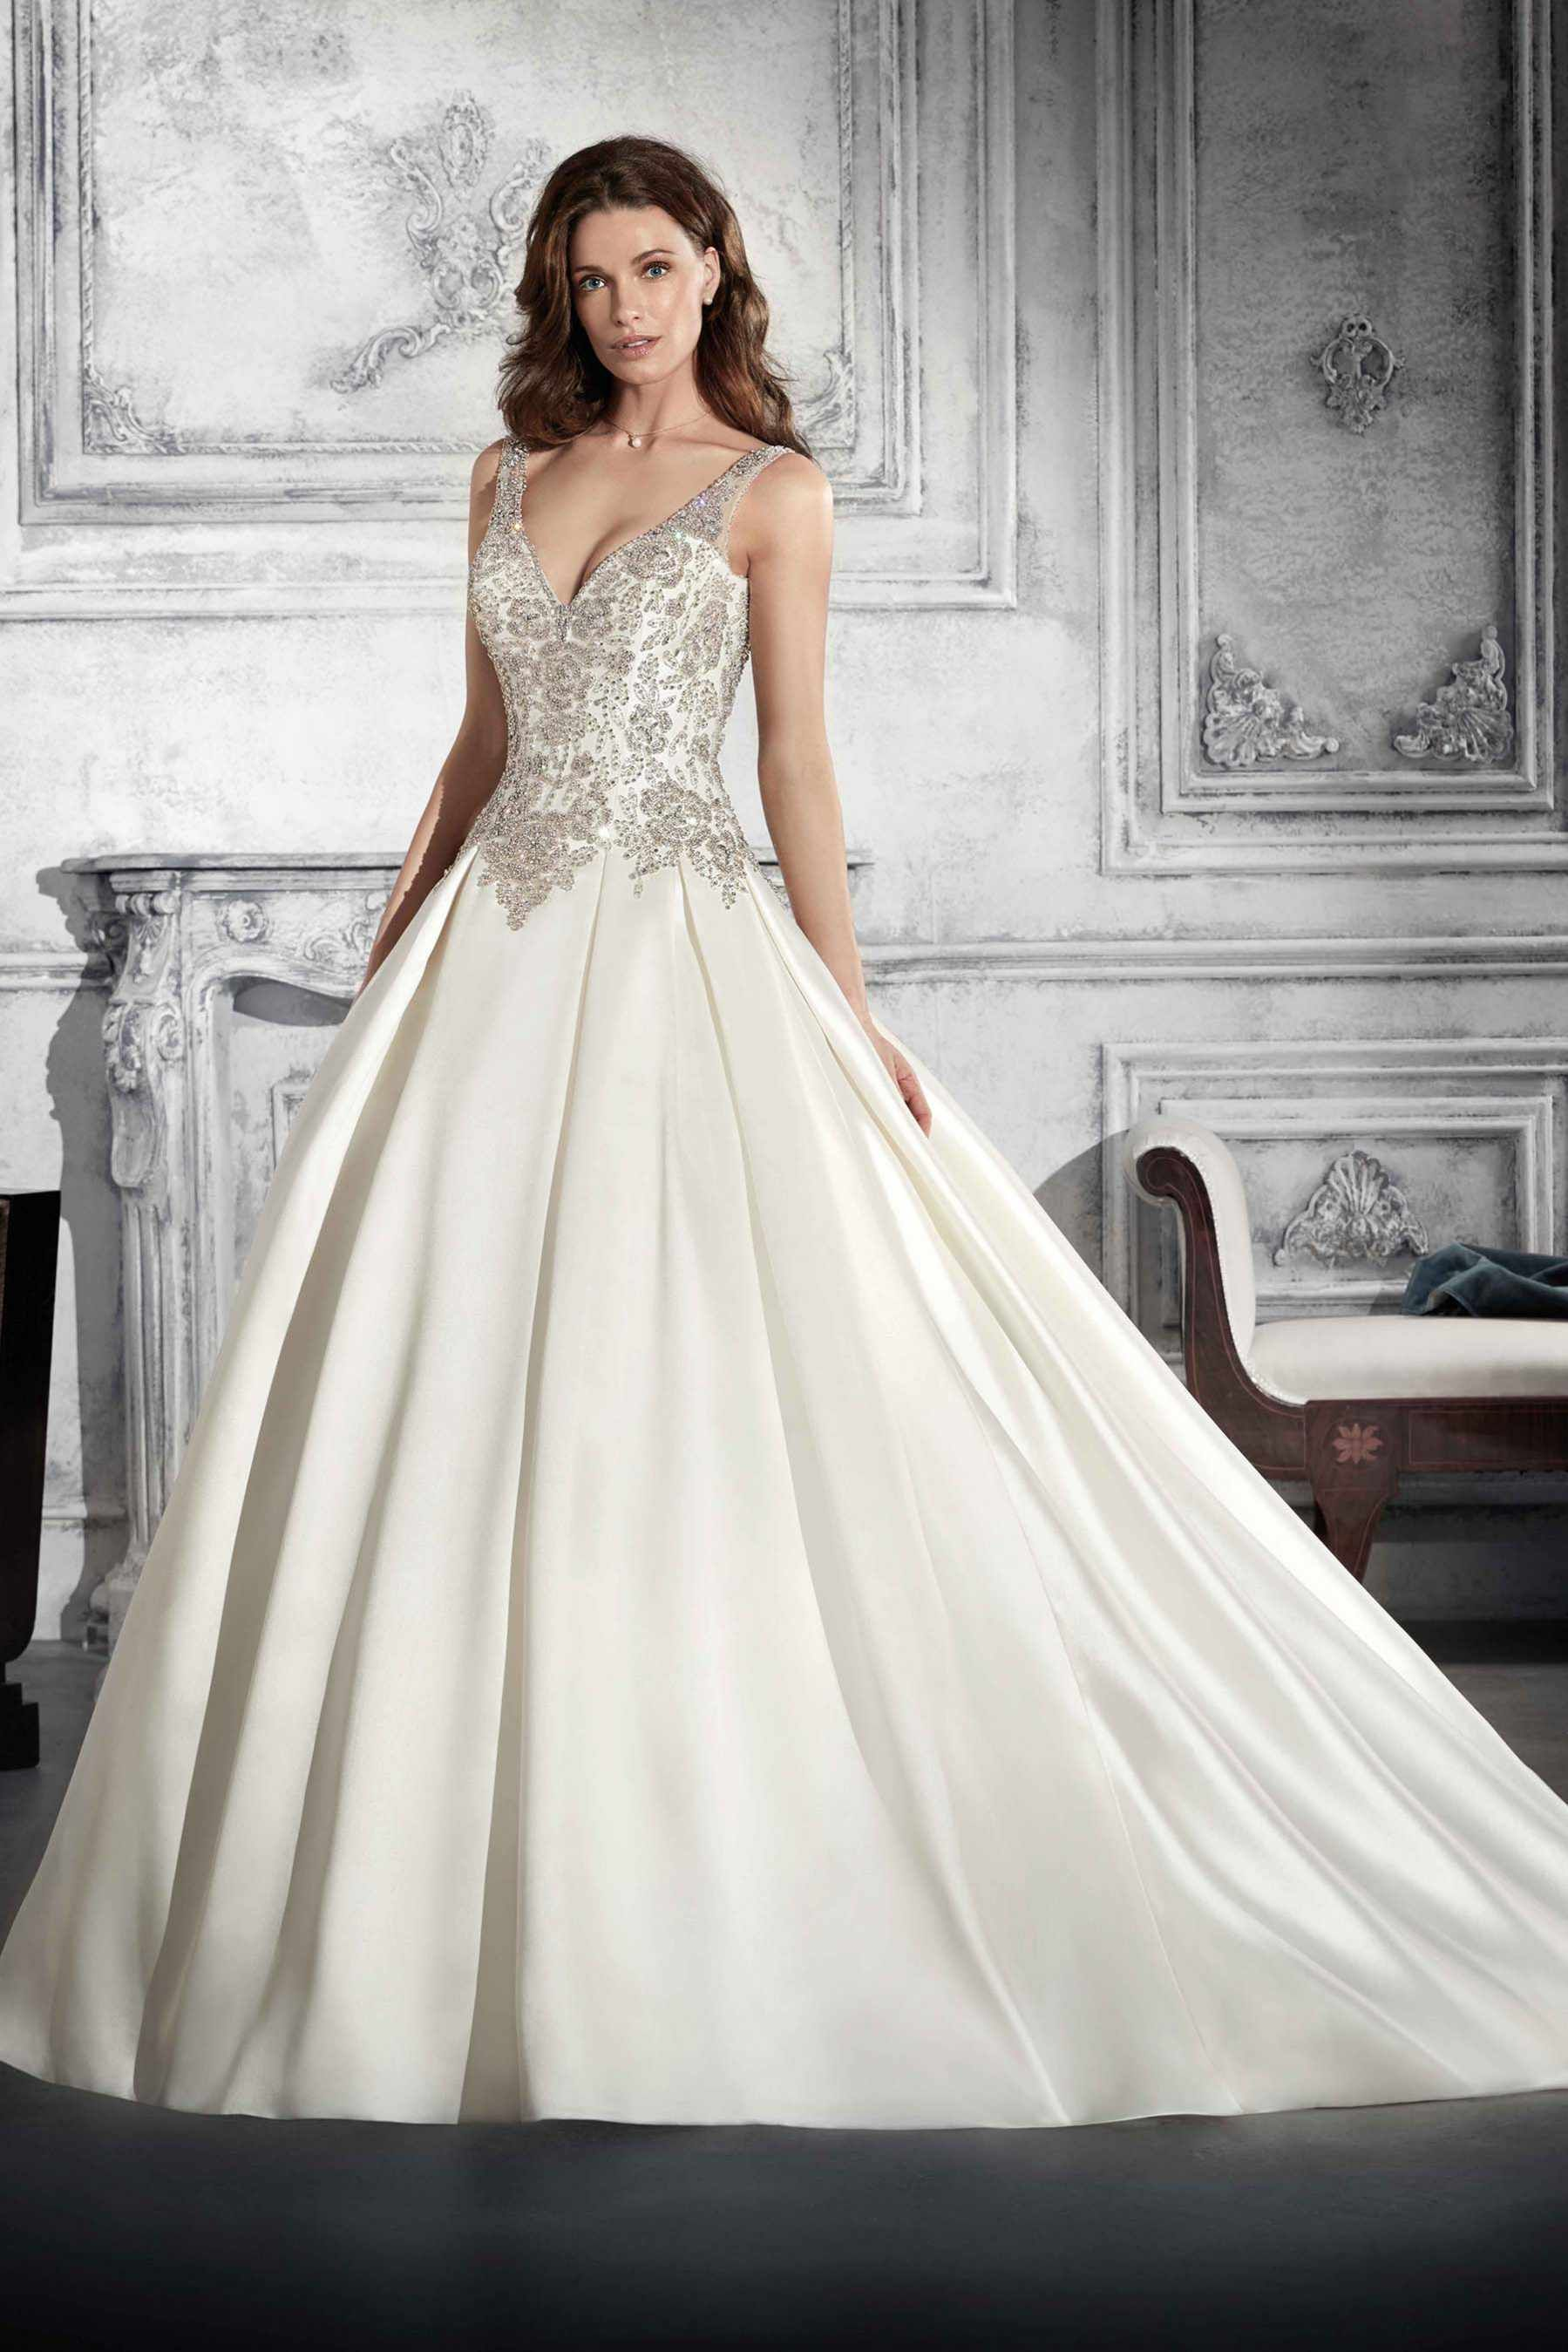 Styles of wedding dresses  Demetrios Wedding Dress Style  This bridal gown is where glam